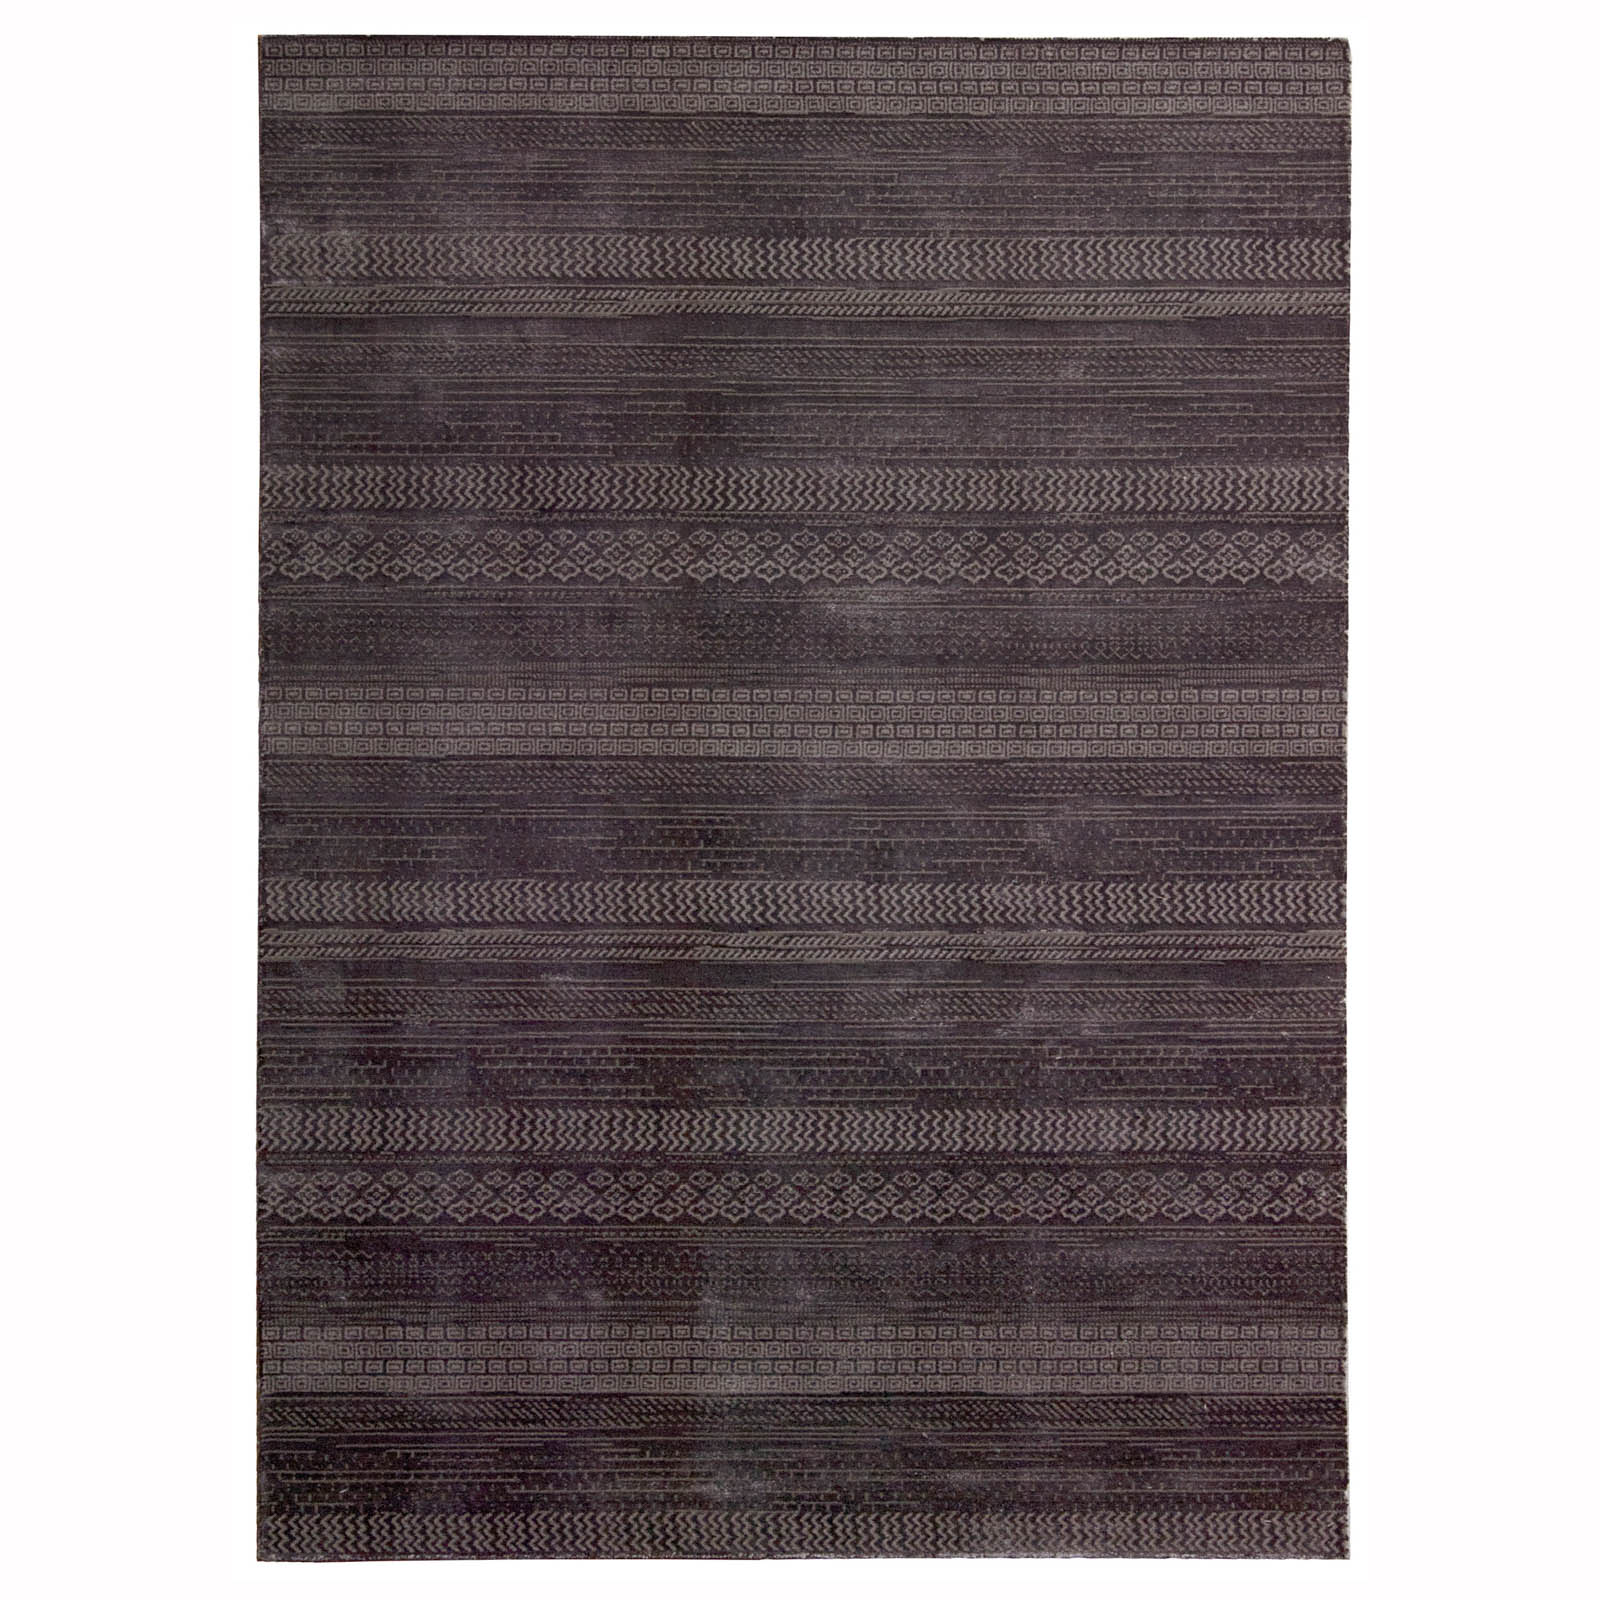 Calvin Klein Maya Rugs MAY52 in Wineberry